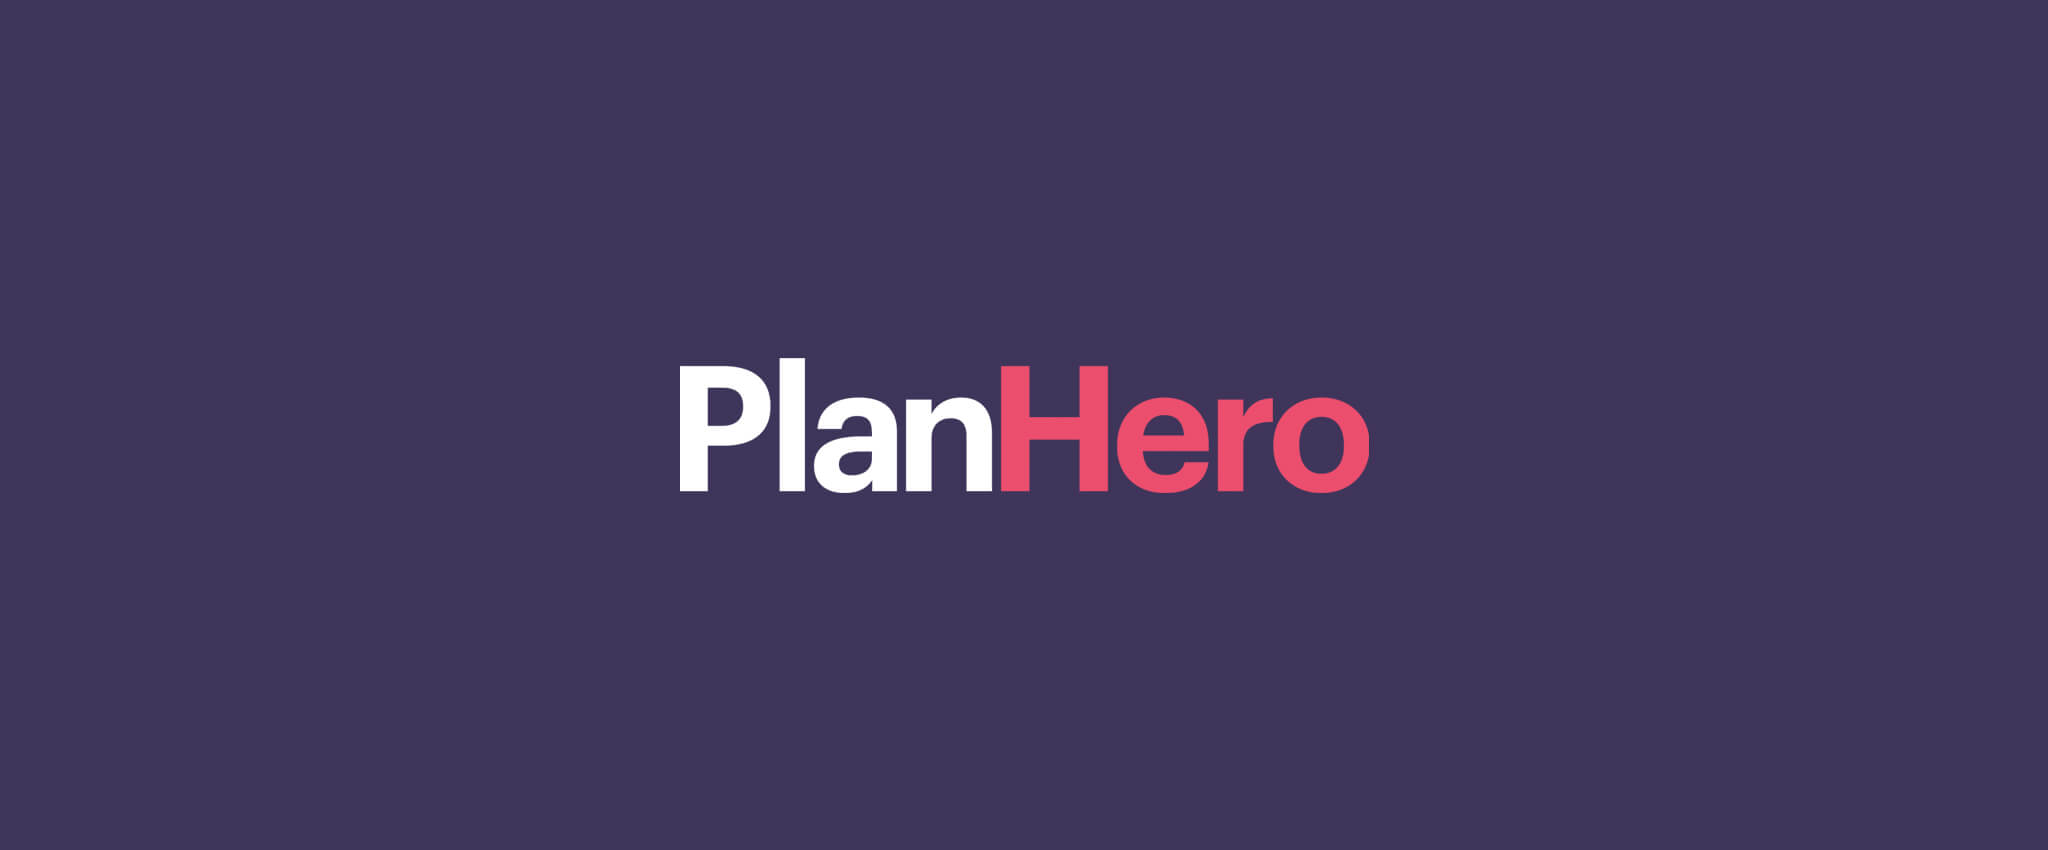 MomClone new name PlanHero